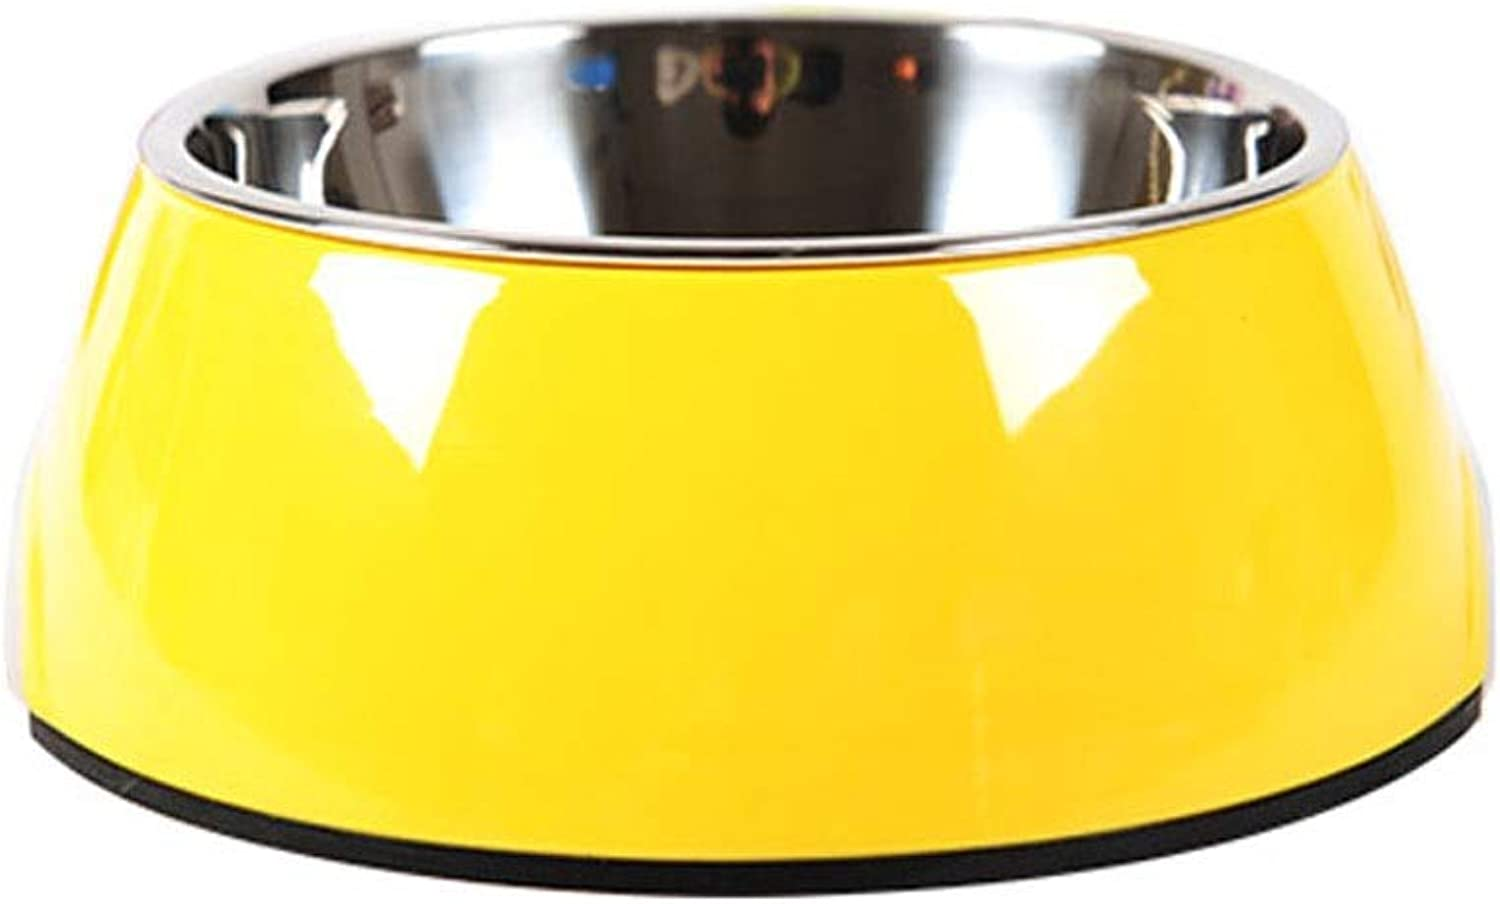 Stainless Steel Animals Dog Bowl Travel Food Bowls for Cats Dogs Pink Outdoor Drink Water Pet Dog Dish Feeder Tableware (Colore:Yellow, Size: XL)